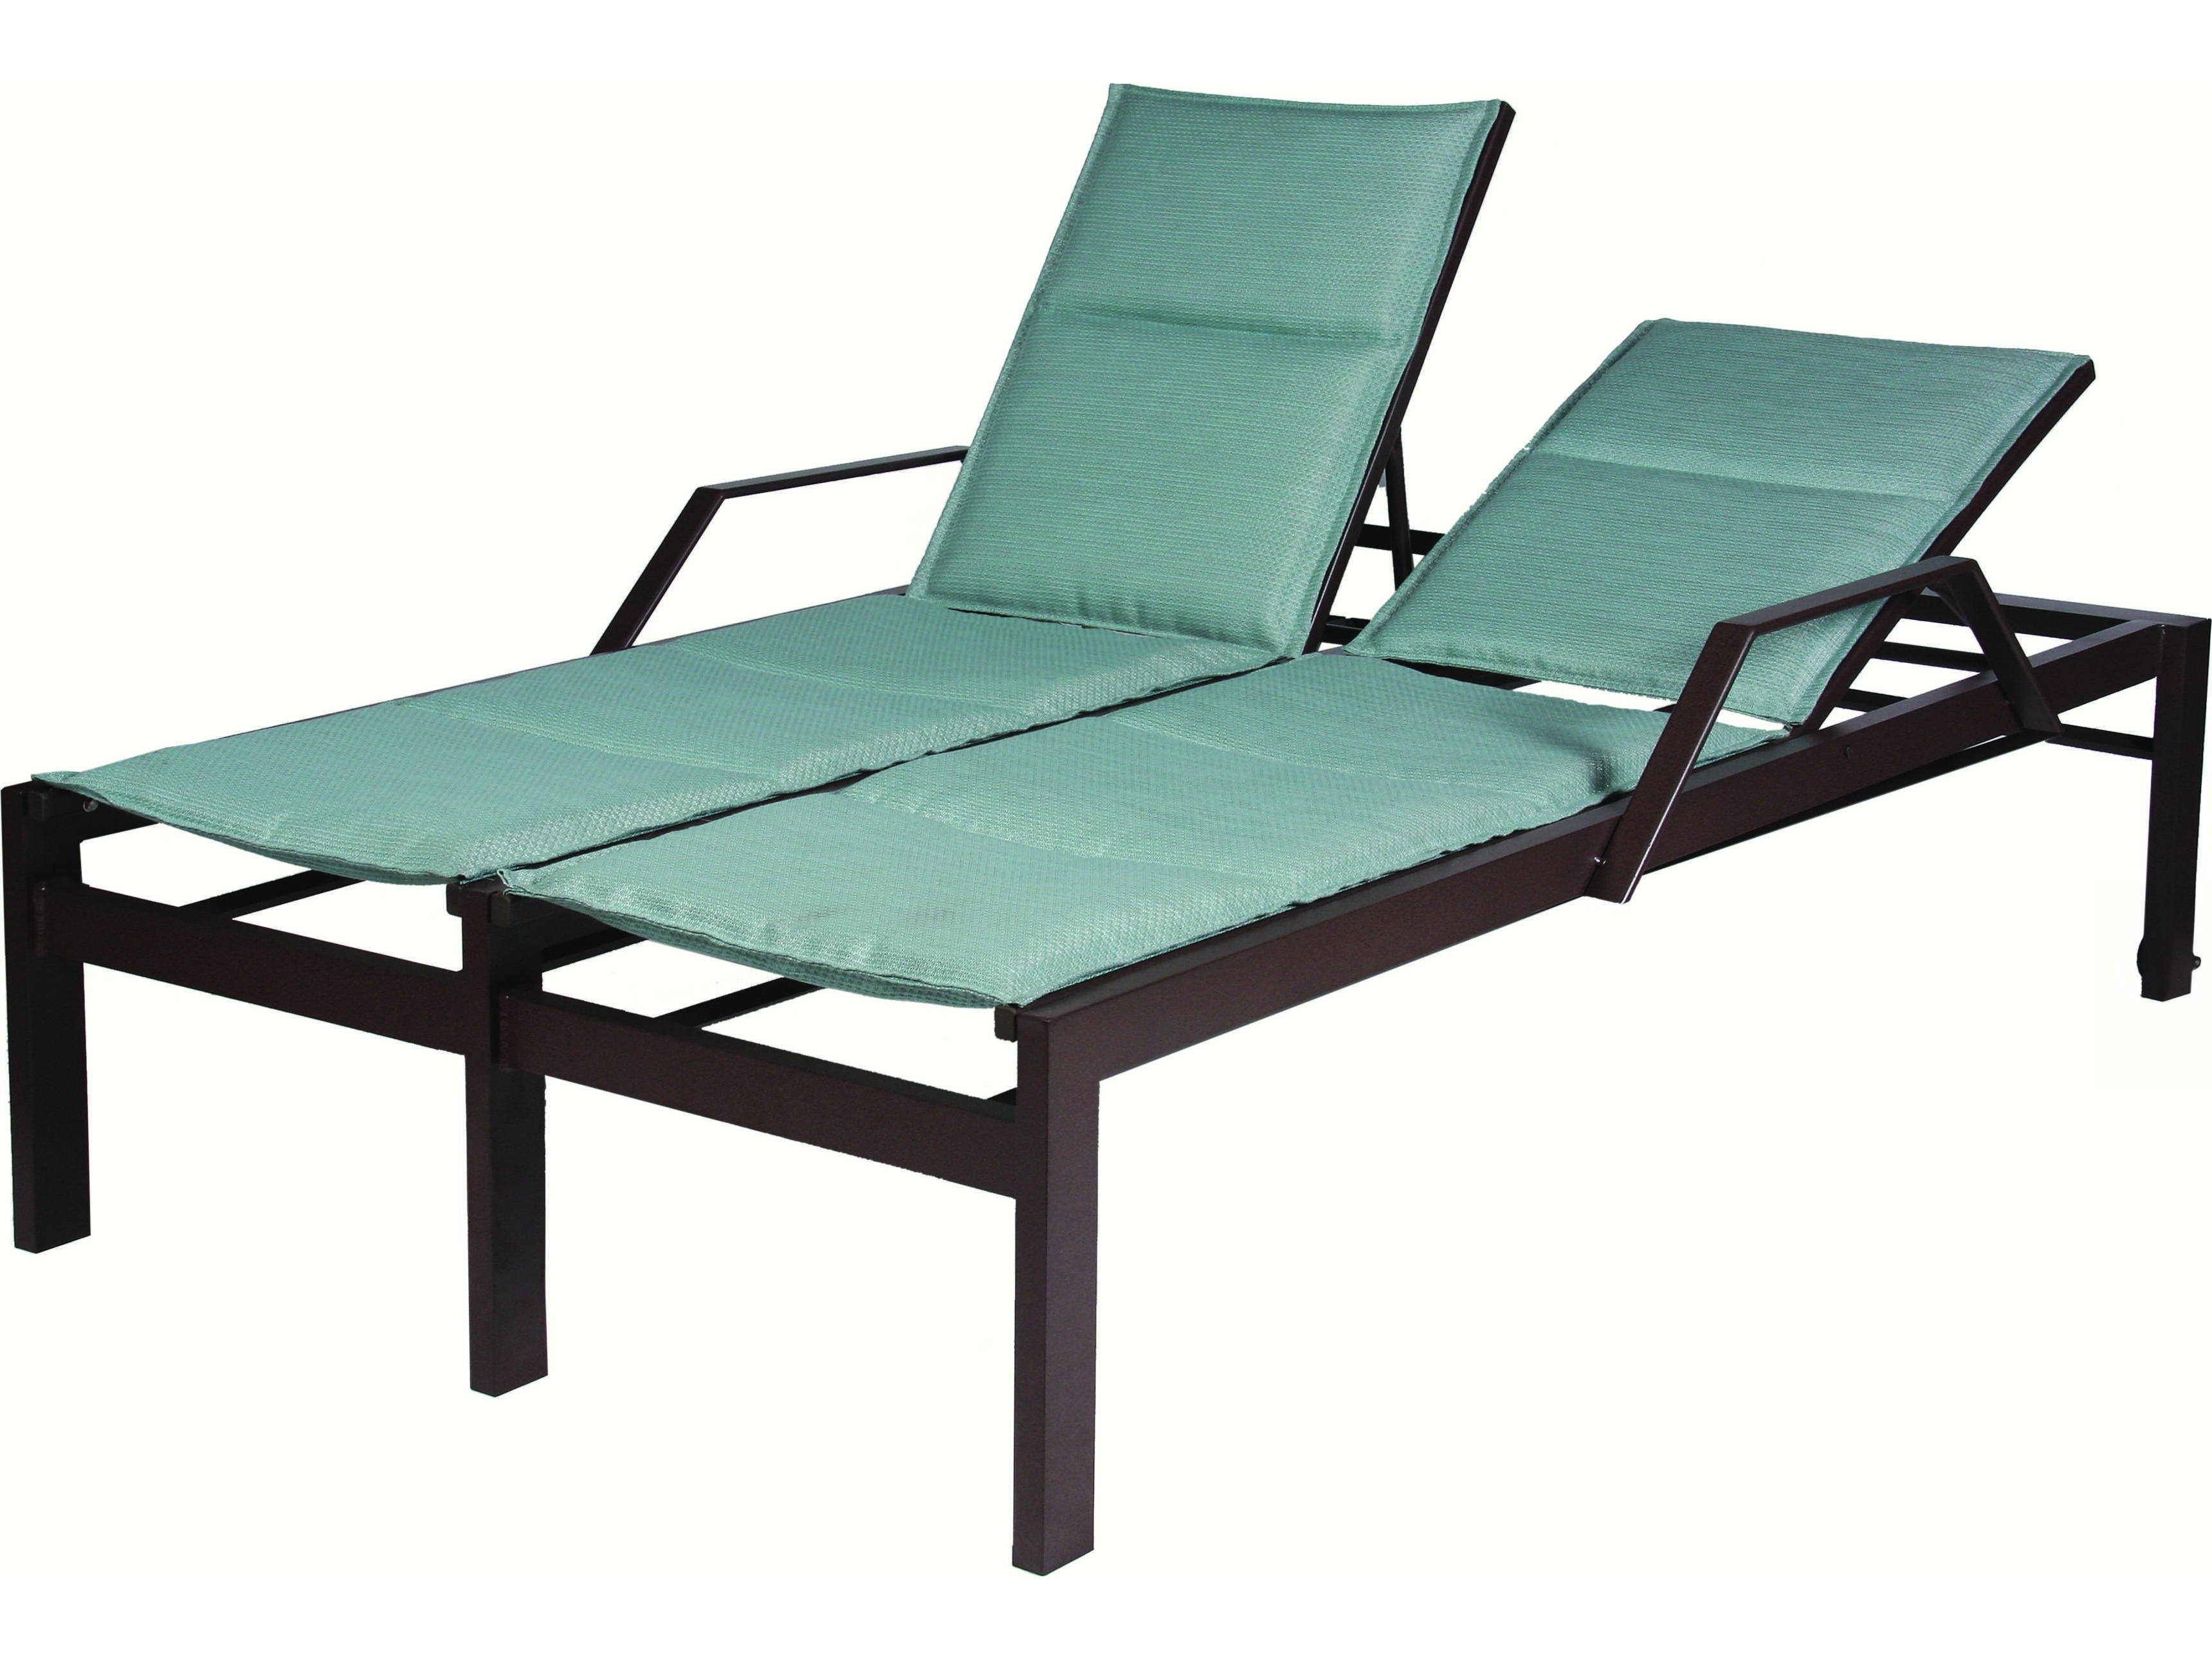 Cast Aluminum Chaise Lounges With Wheels Pertaining To Current Suncoast Vectra Bold Sling Cast Aluminum Double Chaise Lounge With (View 9 of 15)